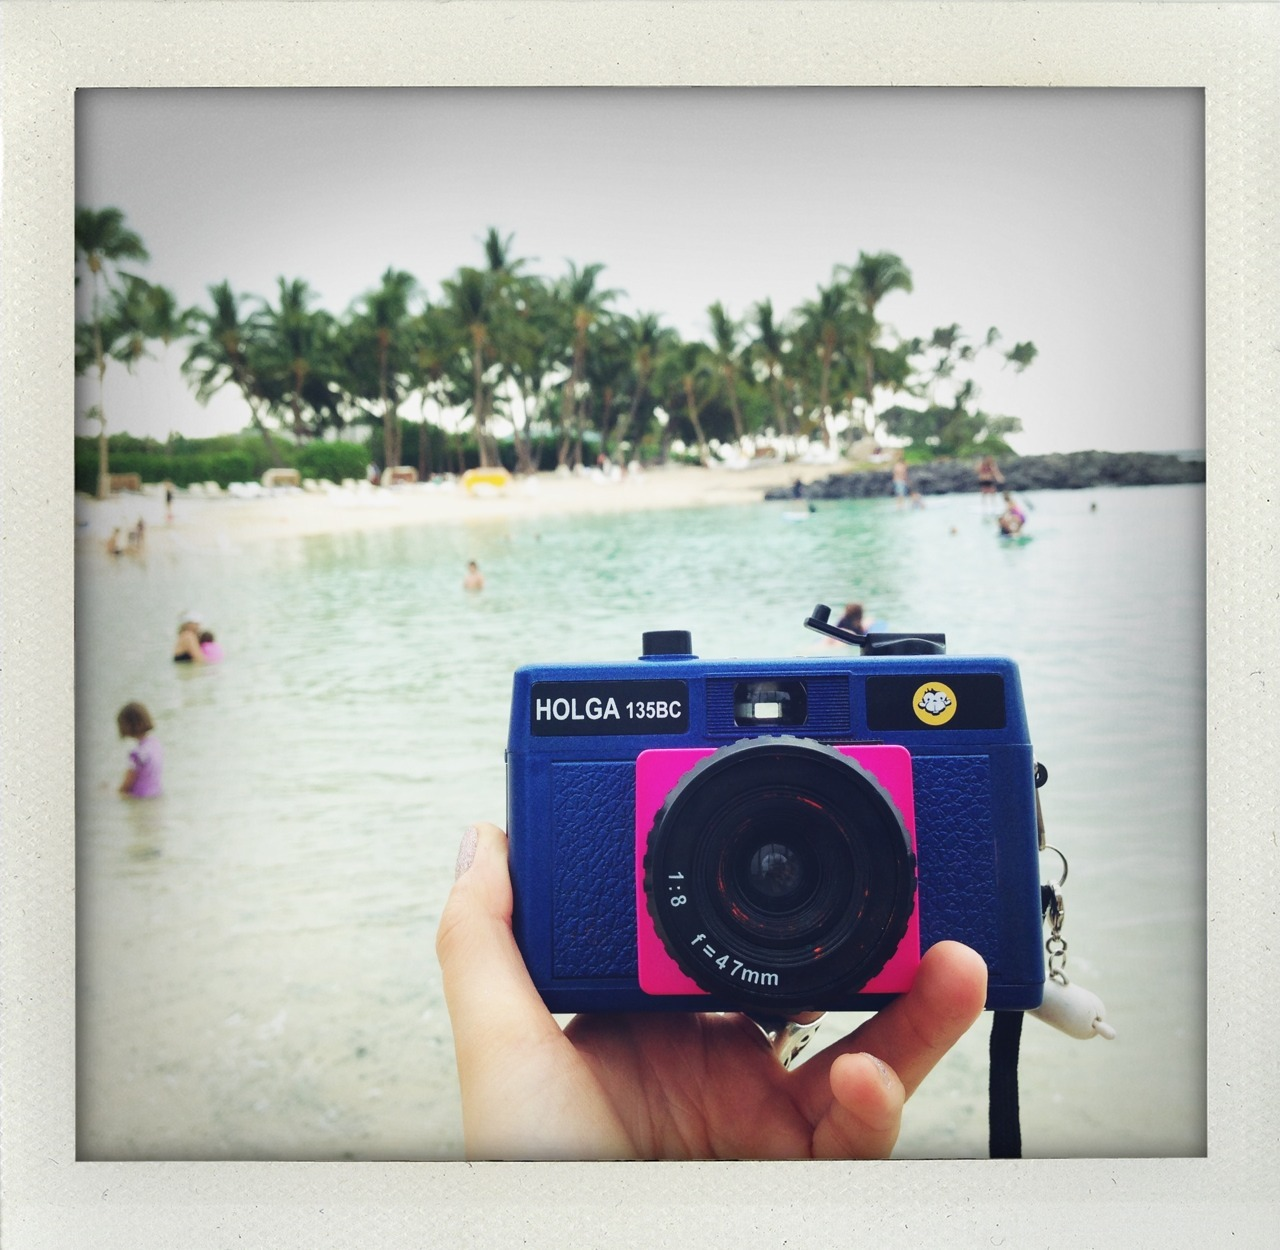 My Holga goes with me everywhere.